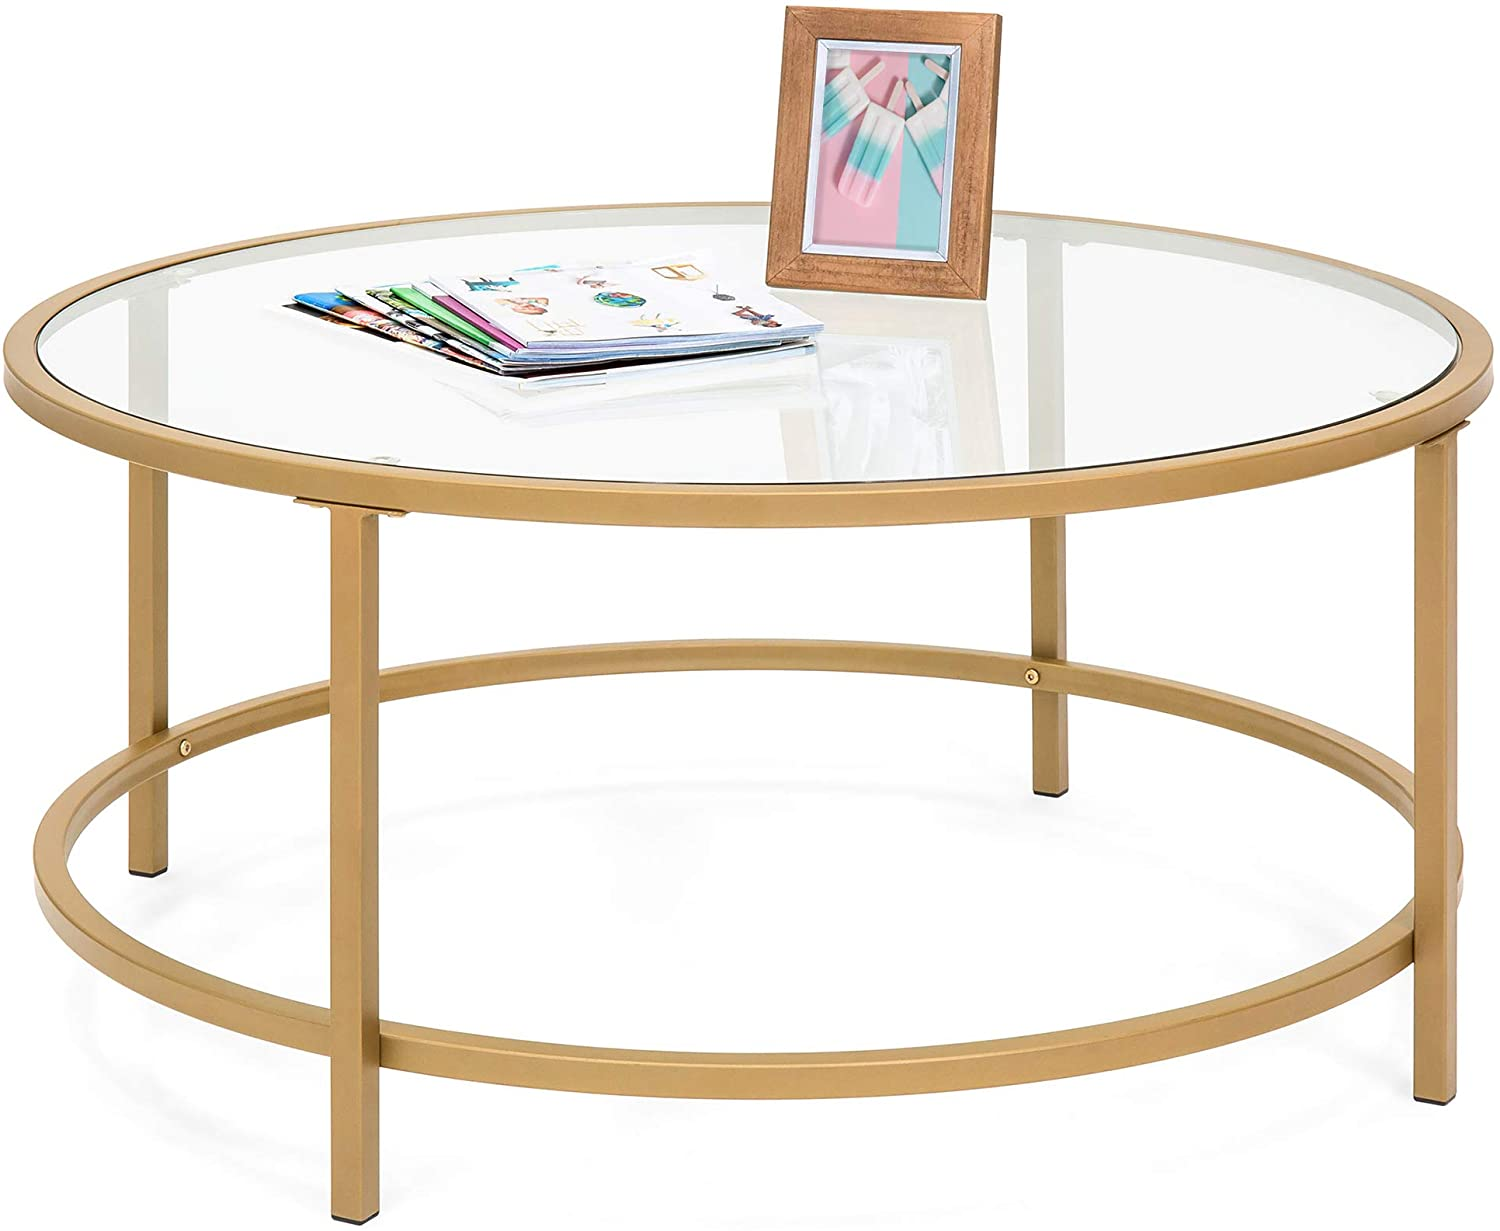 3.  Best Choice Accent coffee table – Budget-Friendly